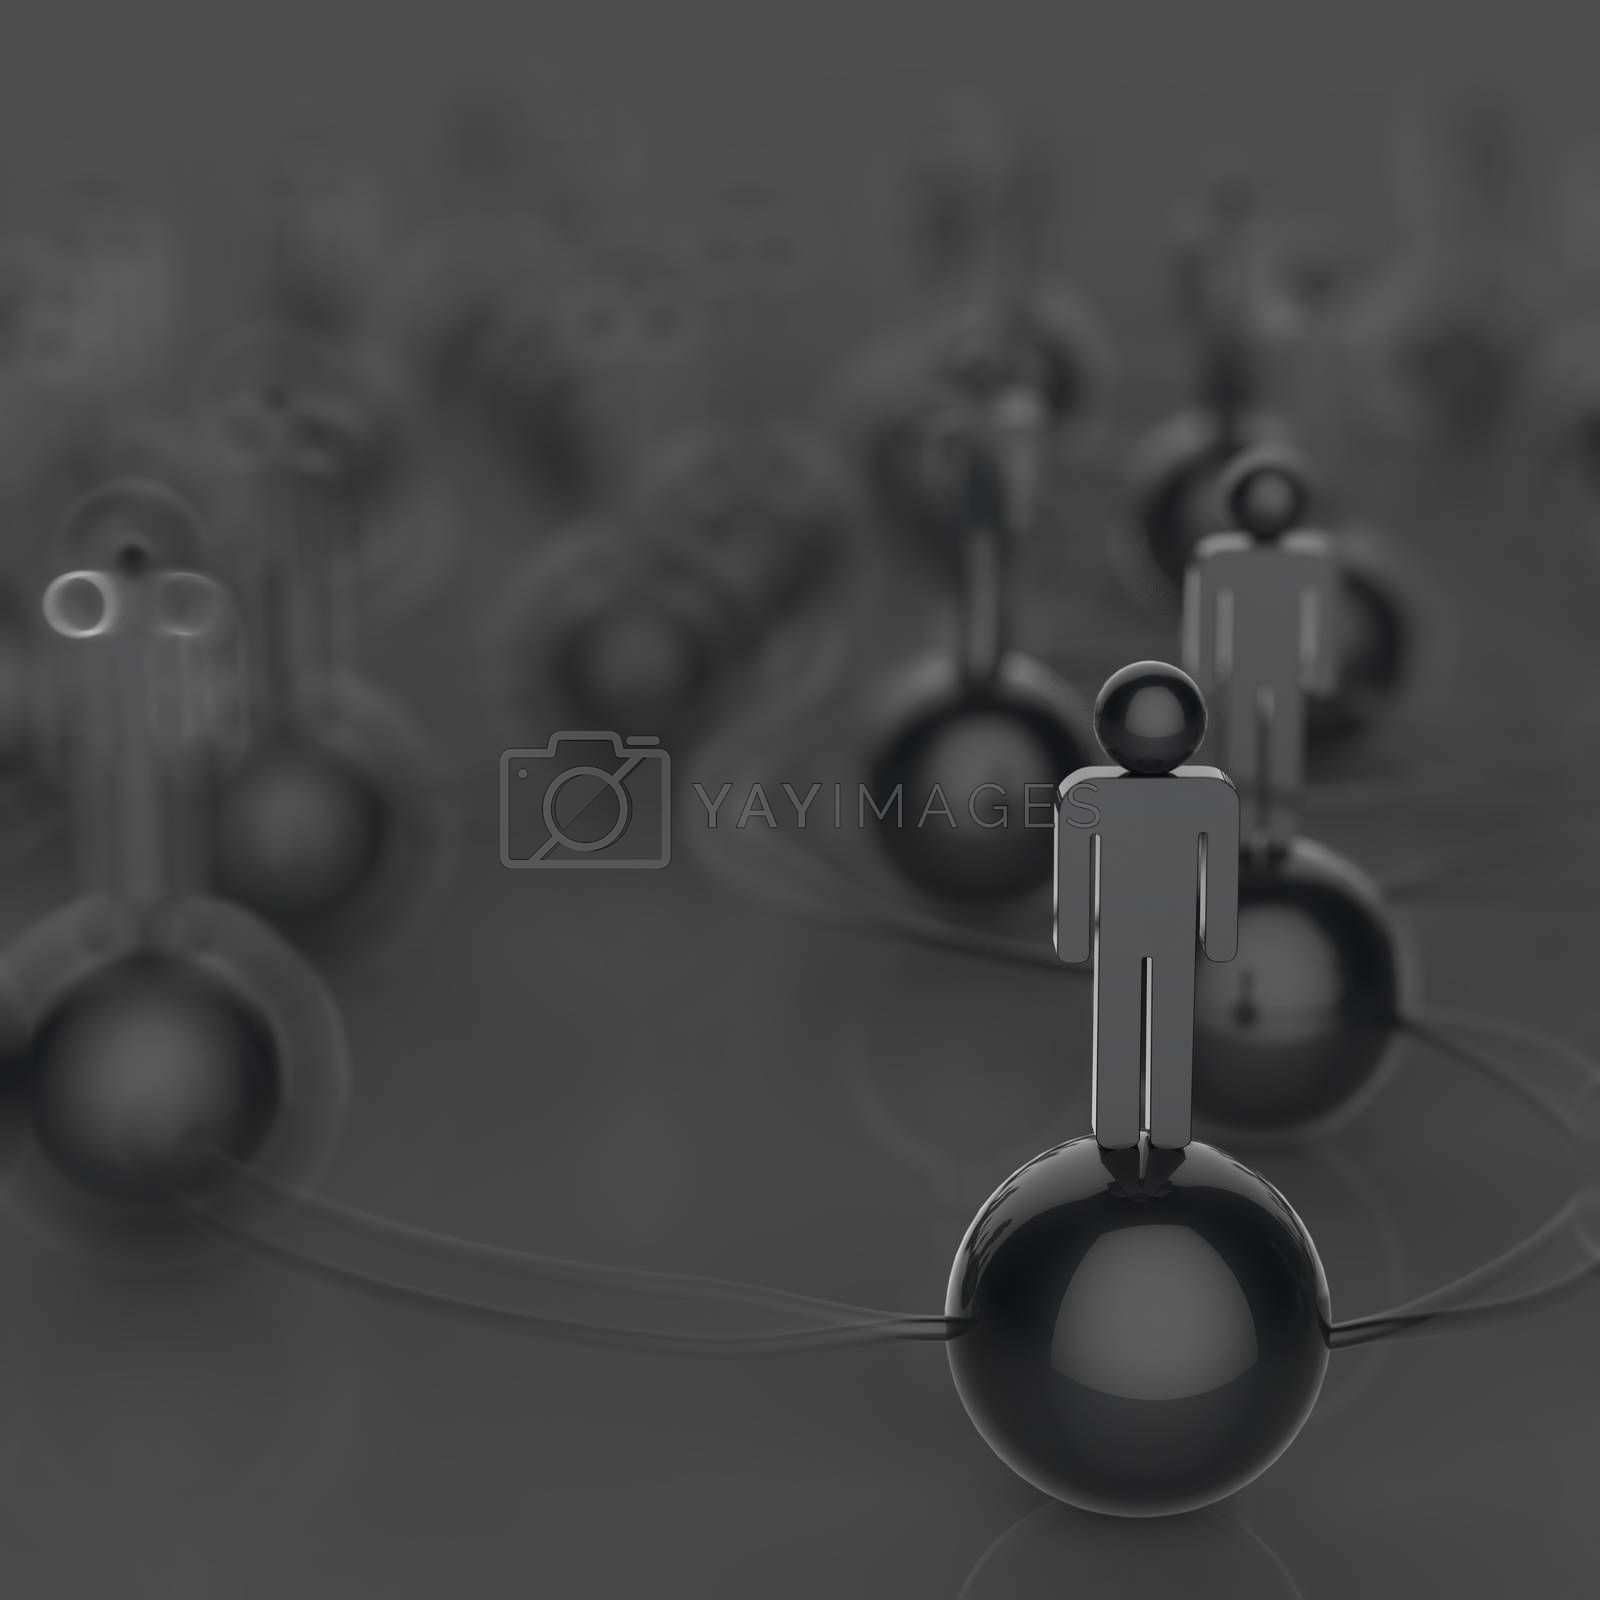 Royalty free image of 3d human social network and leadership as concept by everythingpossible